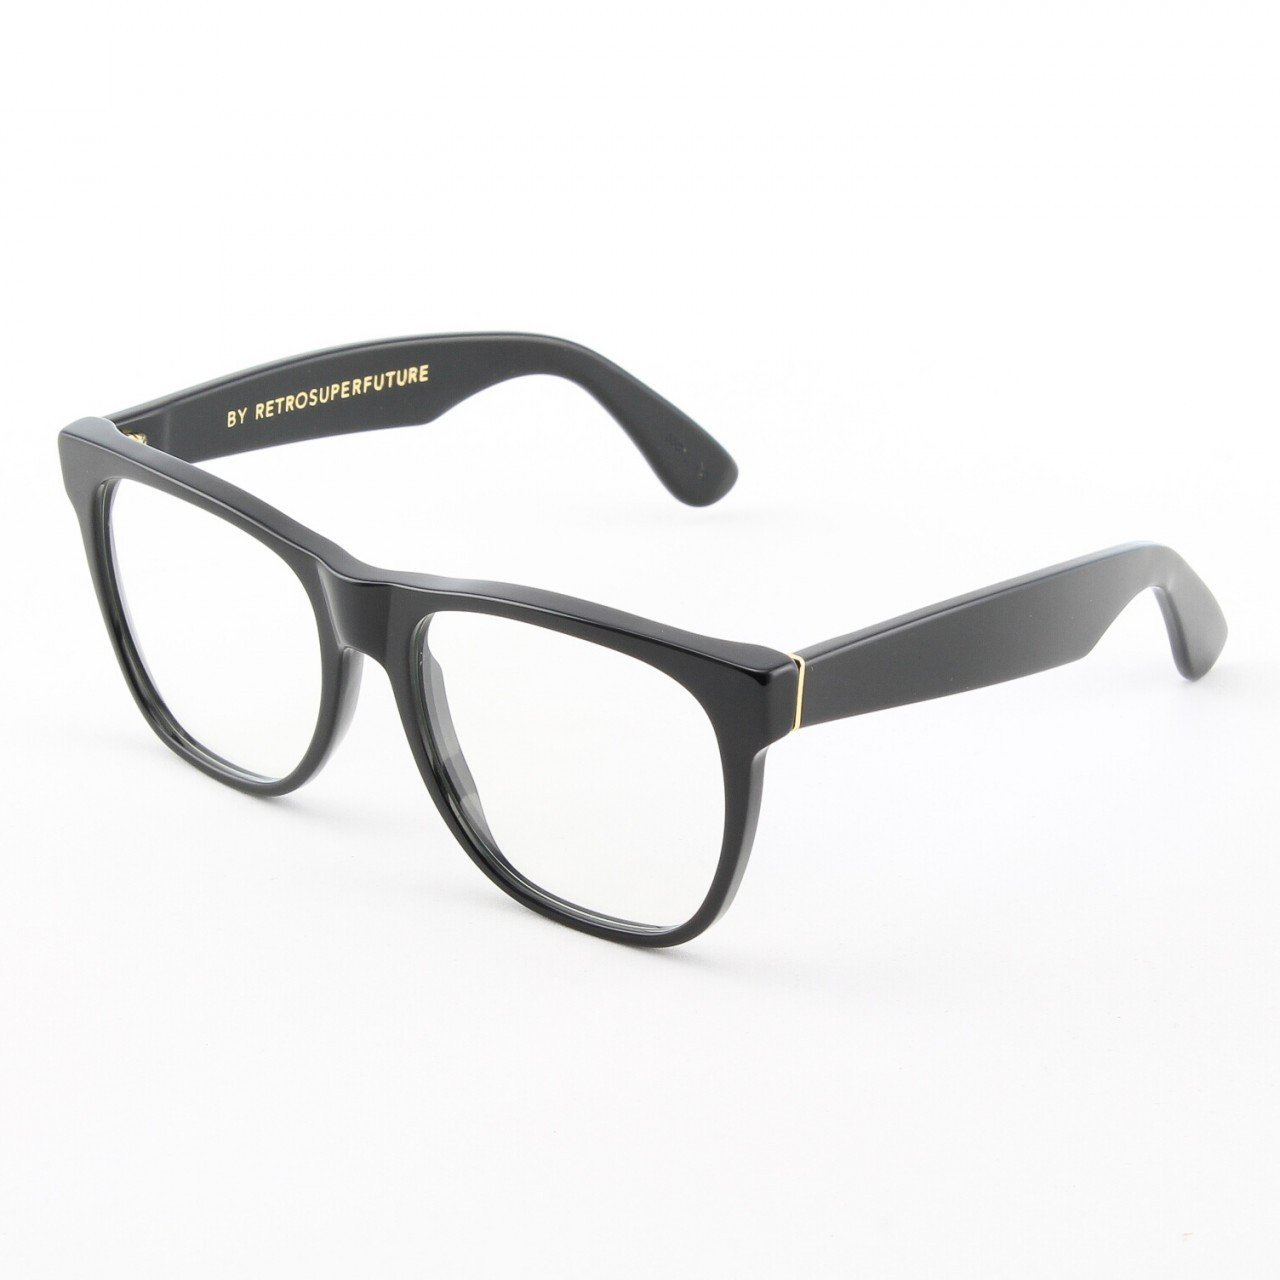 Super Classic 609/0T Eyeglasses Black Gold with Clear Zeiss Lenses by RETROSUPERFUTURE